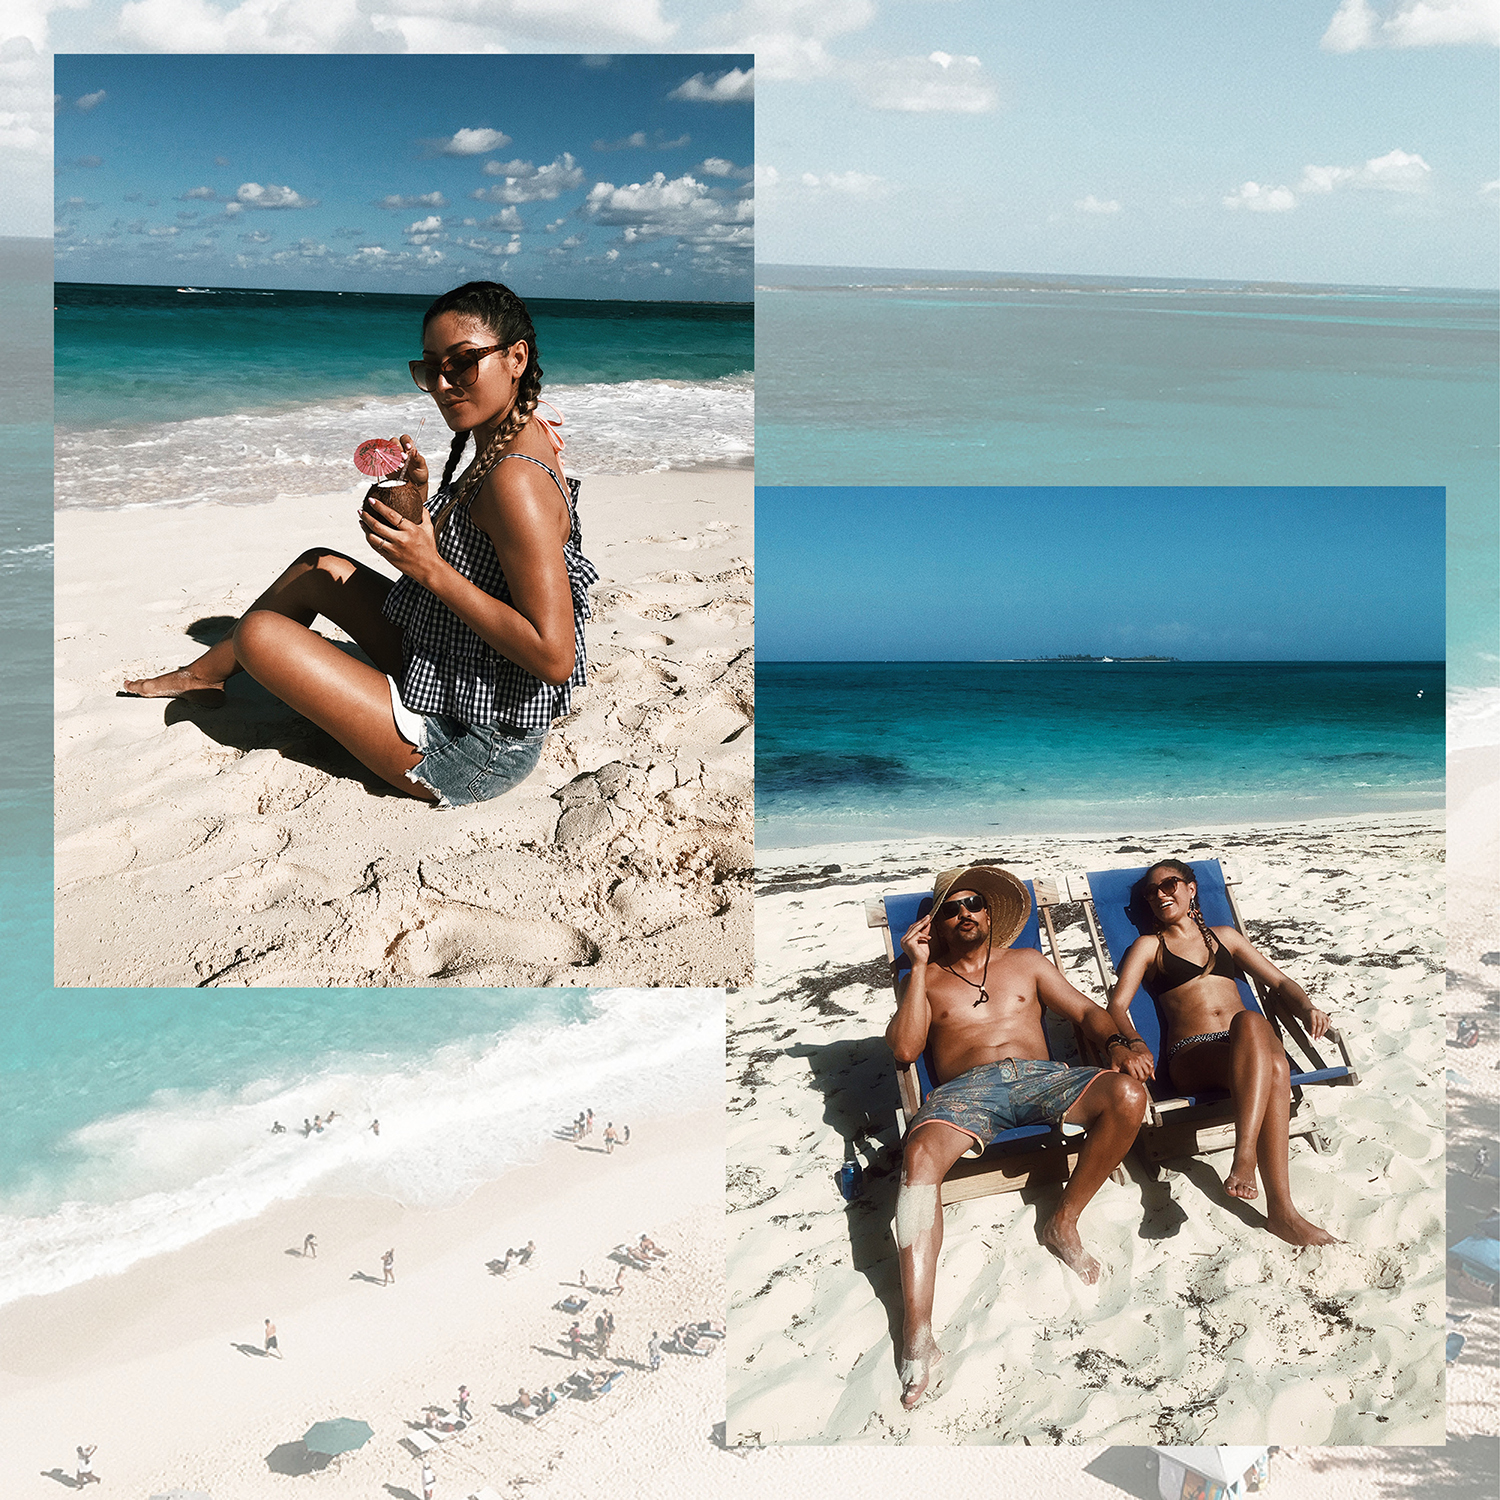 The Bahamas, bahamas, island, vacation, trip, travel, birthday, melrodstyle, la blogger, travel blogger, hispanic blogger, mexican blogger, latina blogger, lifestyle blogger, lifestyle